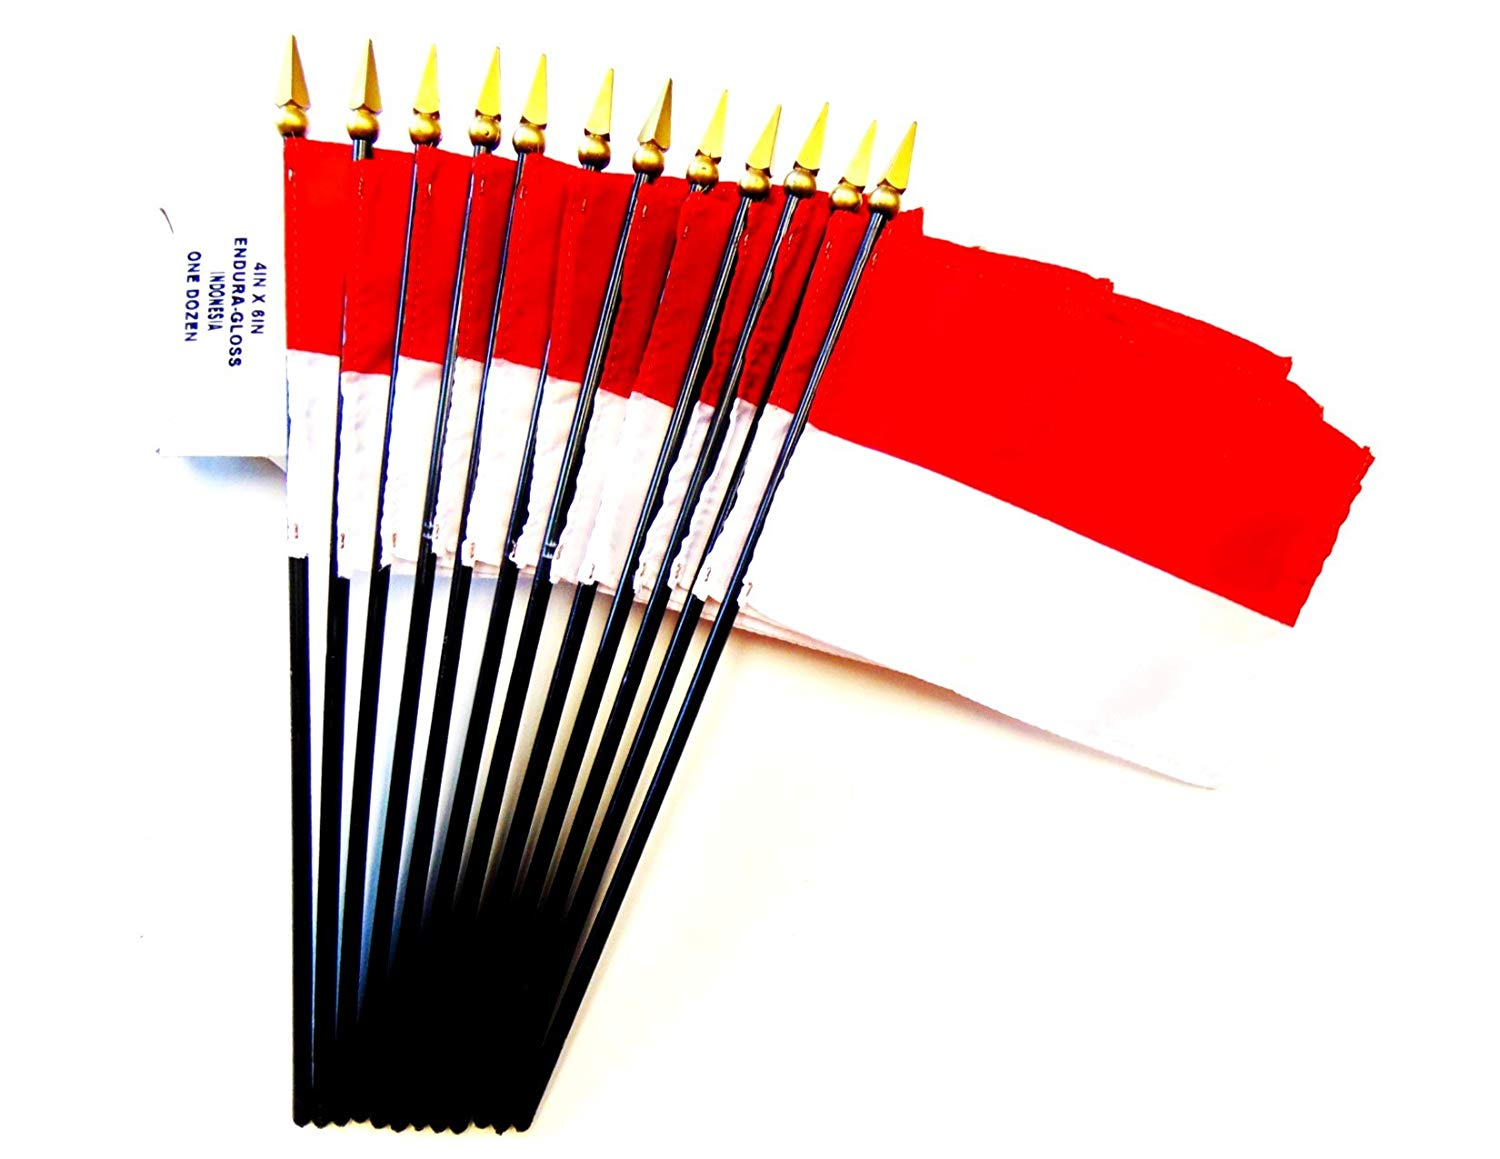 "MADE IN USA!! Box of 12 Indonesia 4""x6"" Miniature Desk & Table Flags; 12 American Made Small Mini Indonesian Flags in a Custom Made Cardboard Box Specifically Made for These Flags"